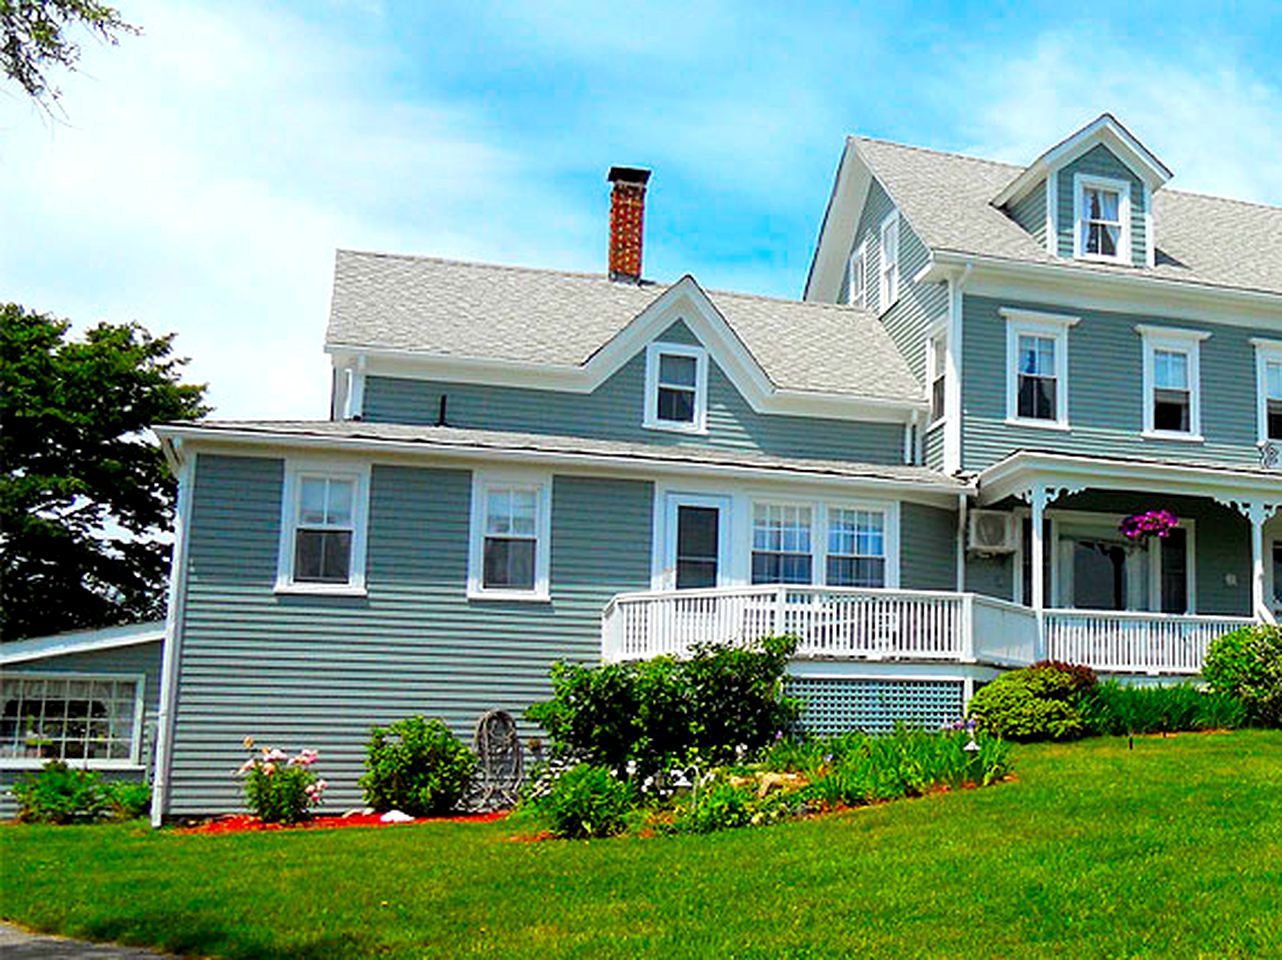 Block Island romantic getaway  (New Shoreham, Rhode Island, United States)